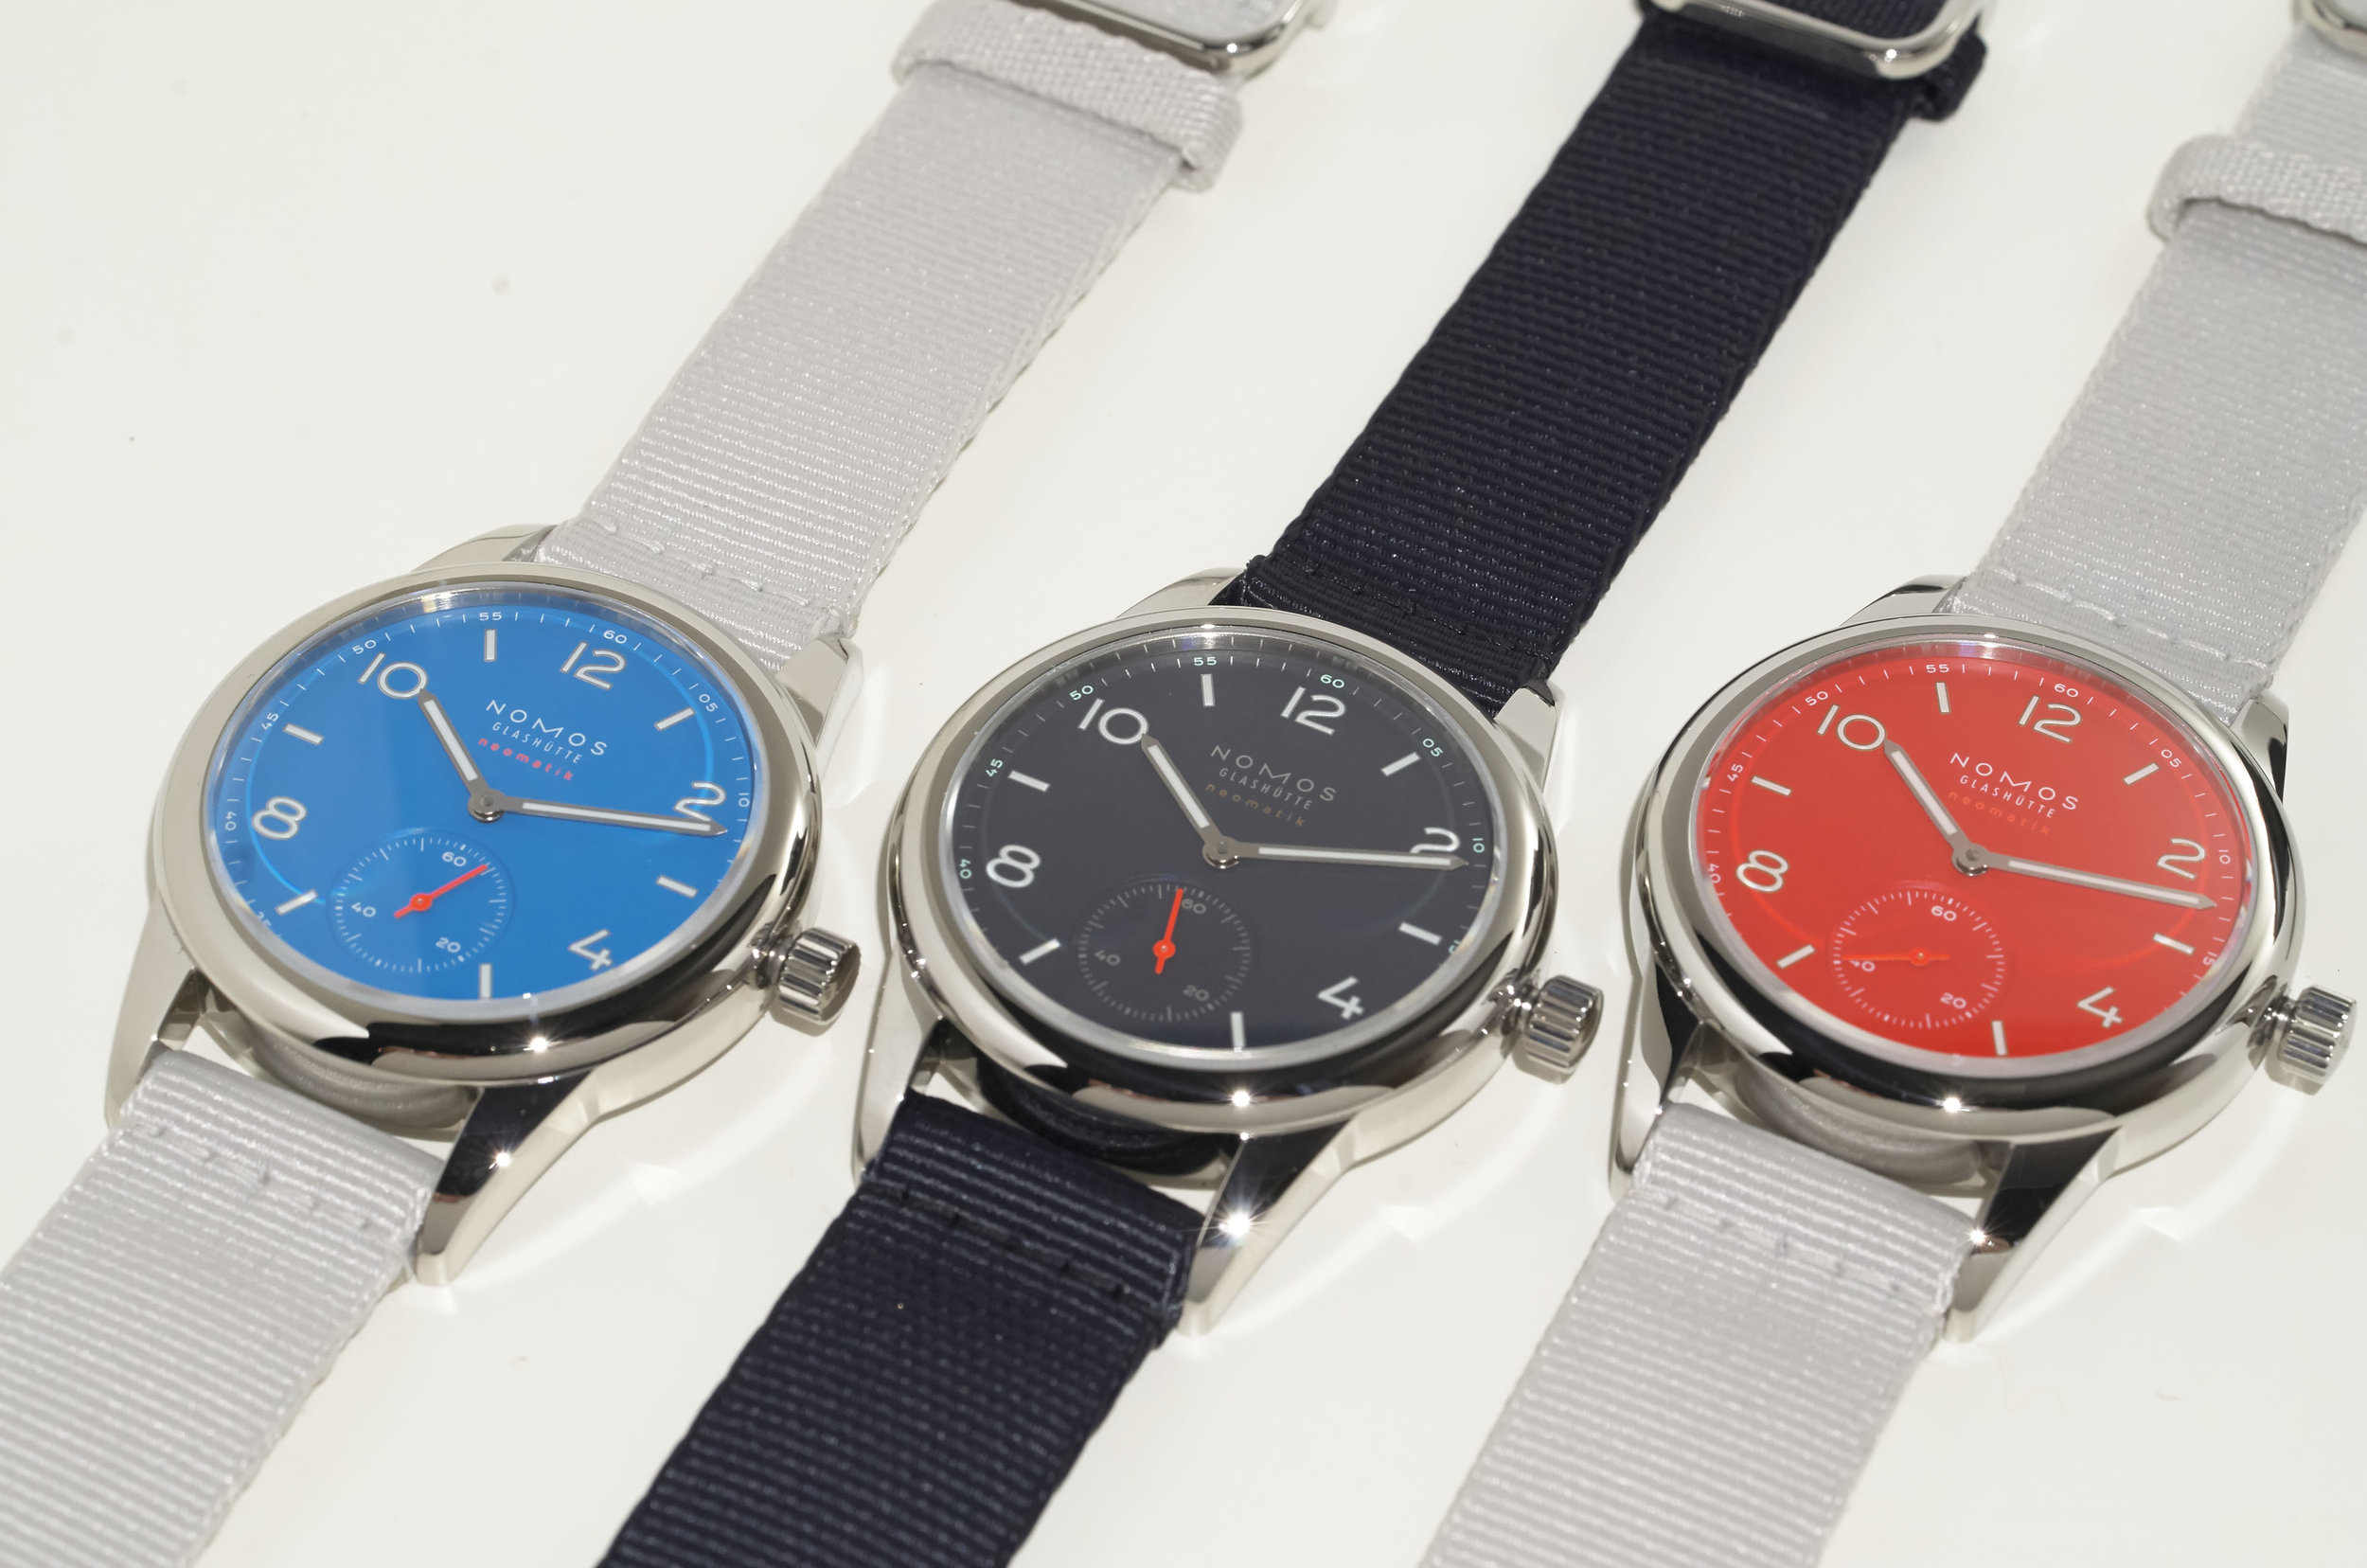 Nomos Club Neomatik in signalblau, Atlantik, and signalrot